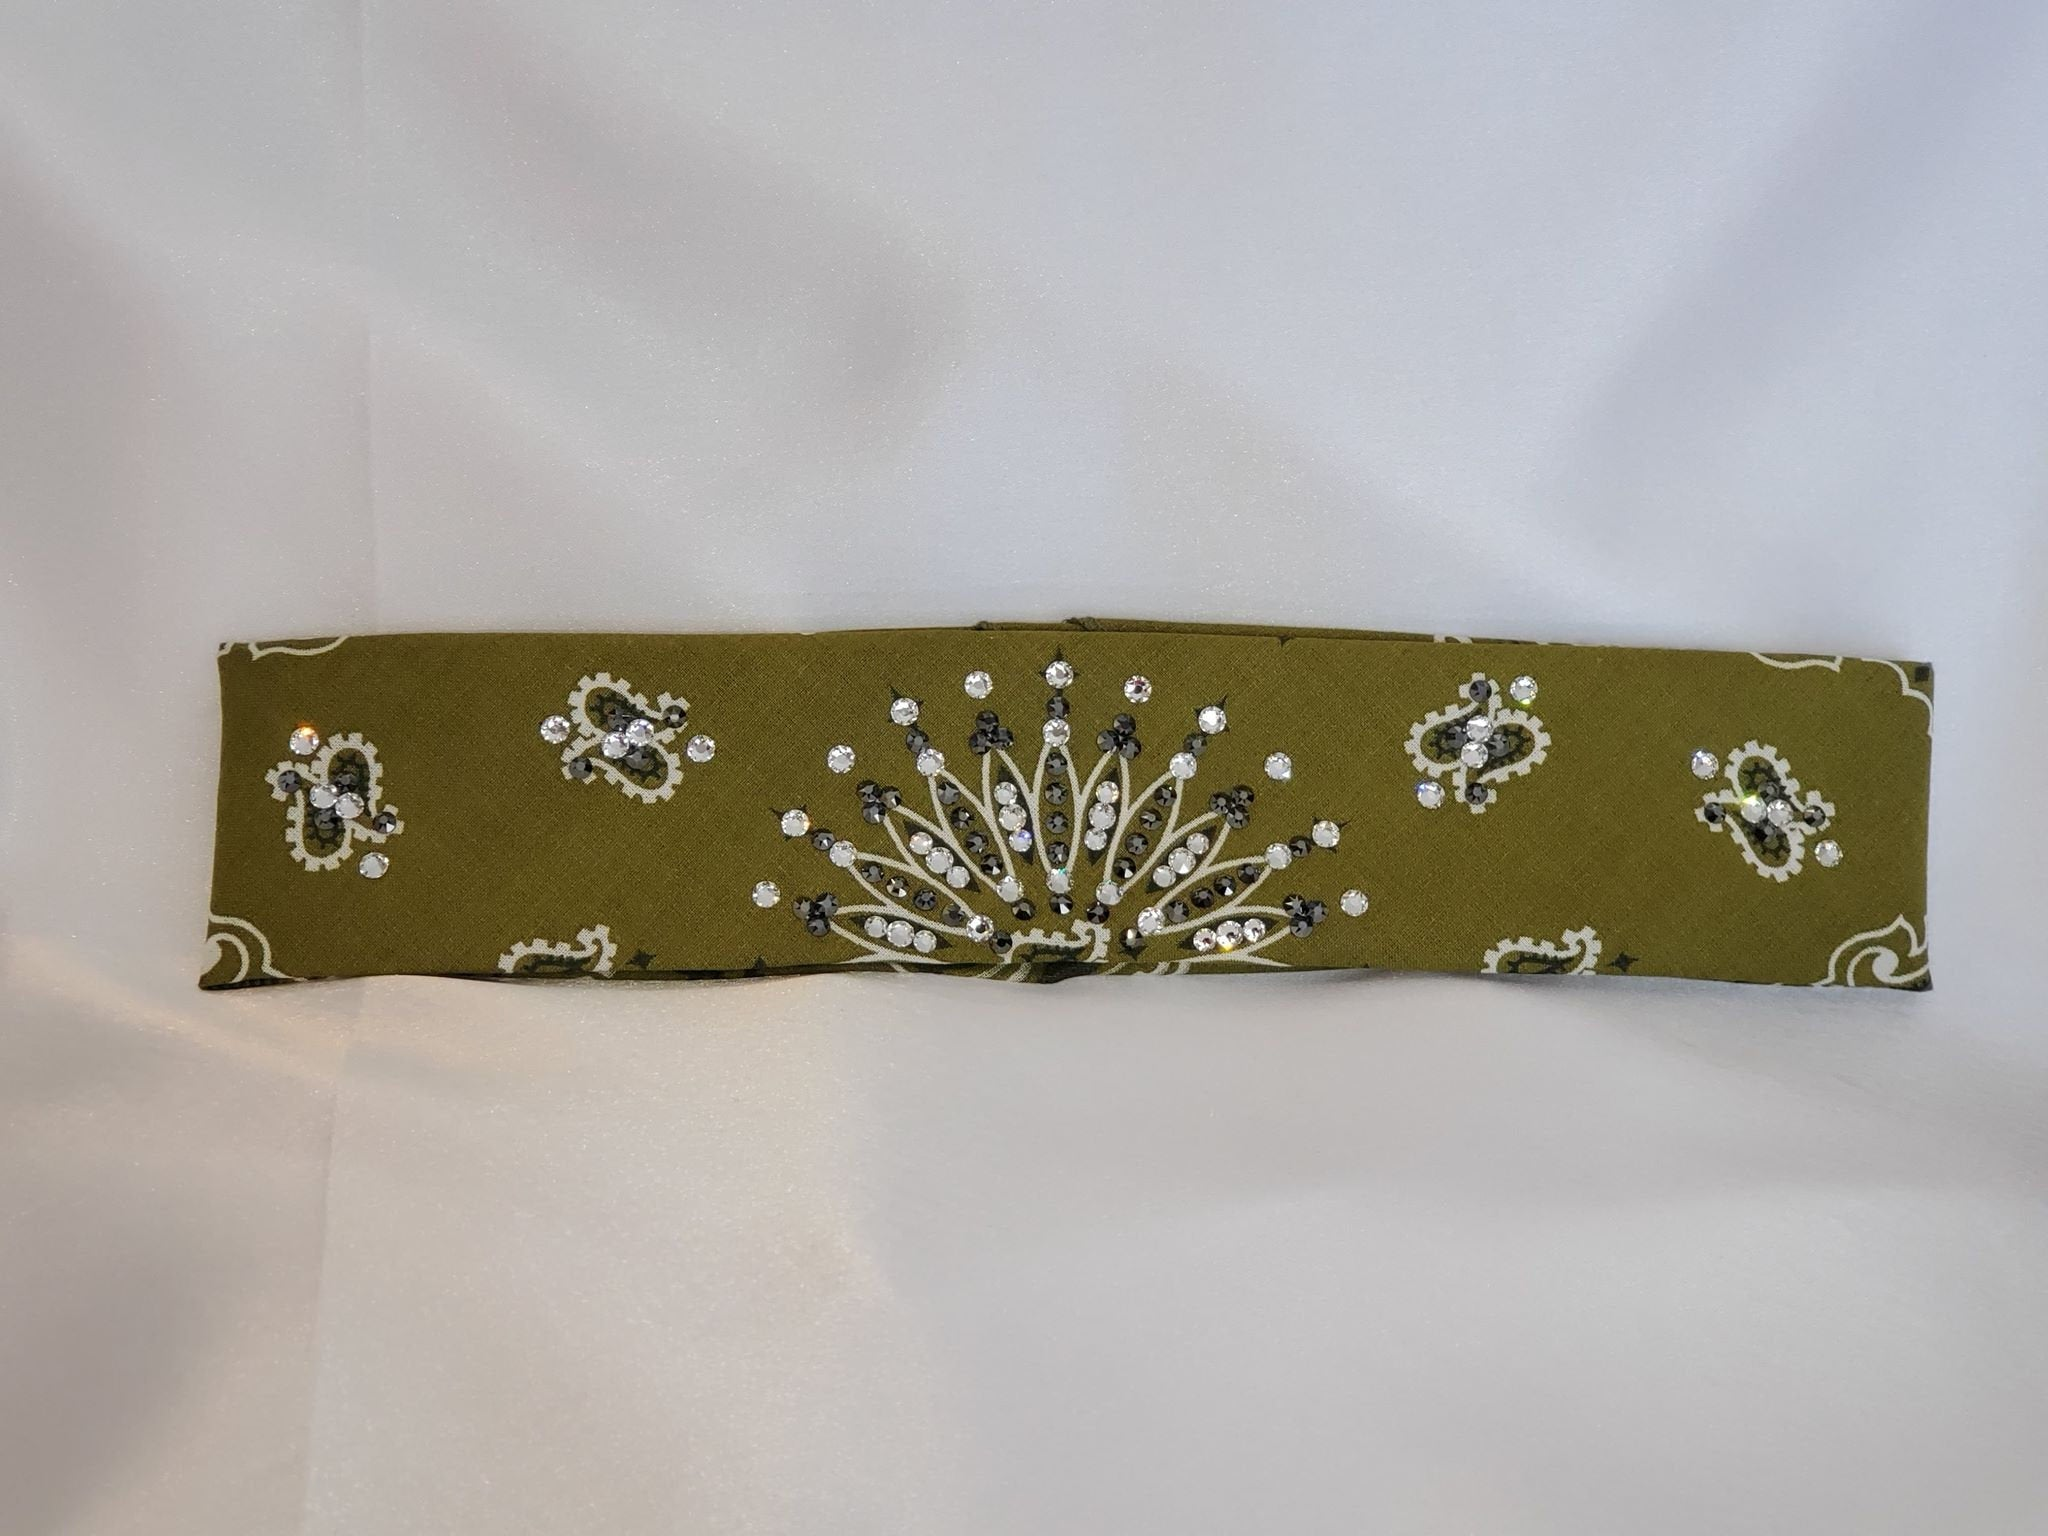 Narrow Olive Green Paisley With Jet Black Hematite and Diamond Clear Swarovski Crystals (Sku2175)